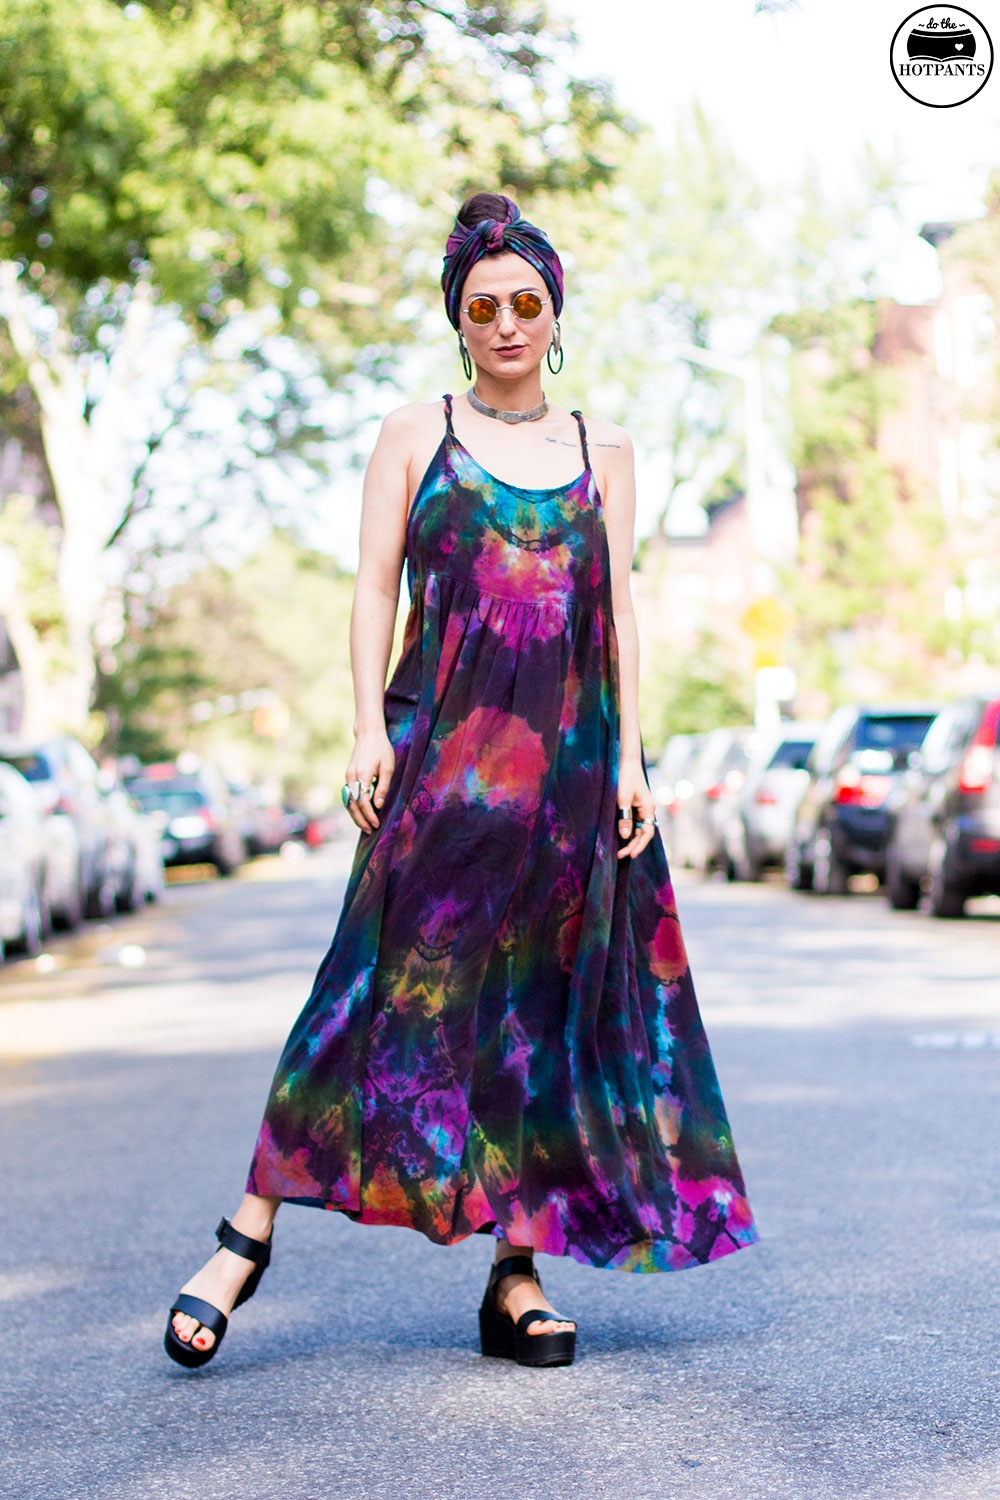 Do The Hotpants Dana Suchow Tie Dye Dress Maxi Flowy Summer Dress Tiedye Headwrap Turban Fashion IMG_9631